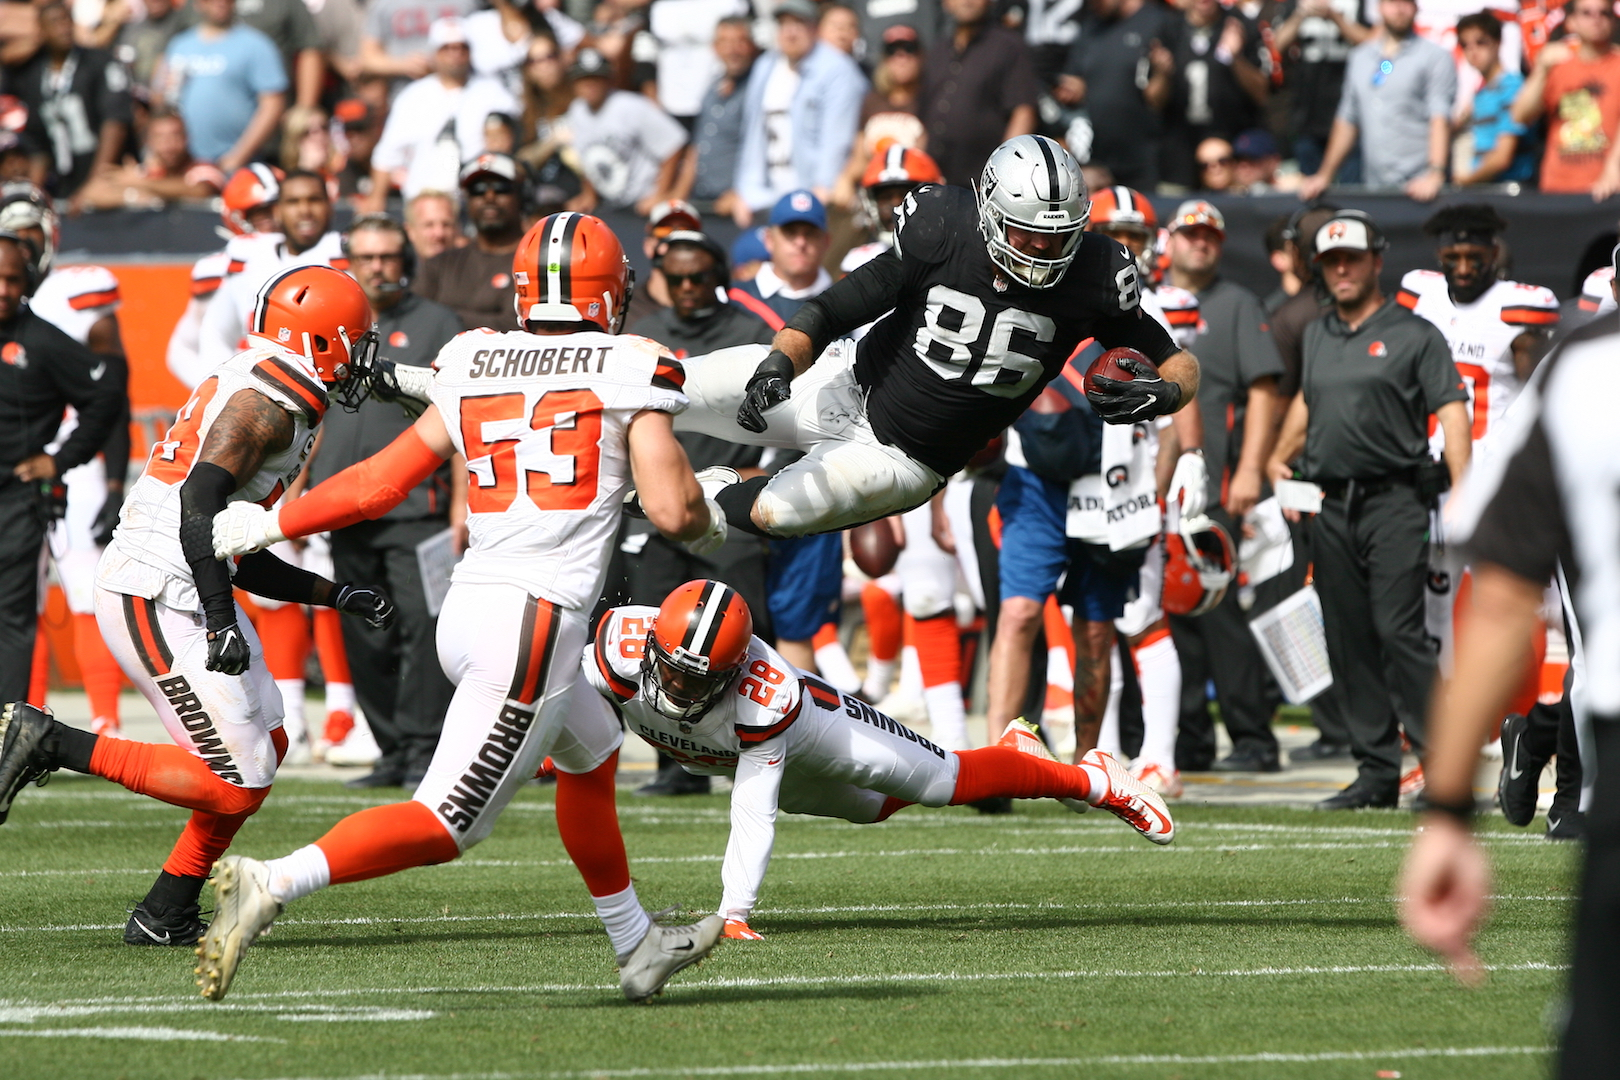 _Browns vs Raiders_09-30-18 0834